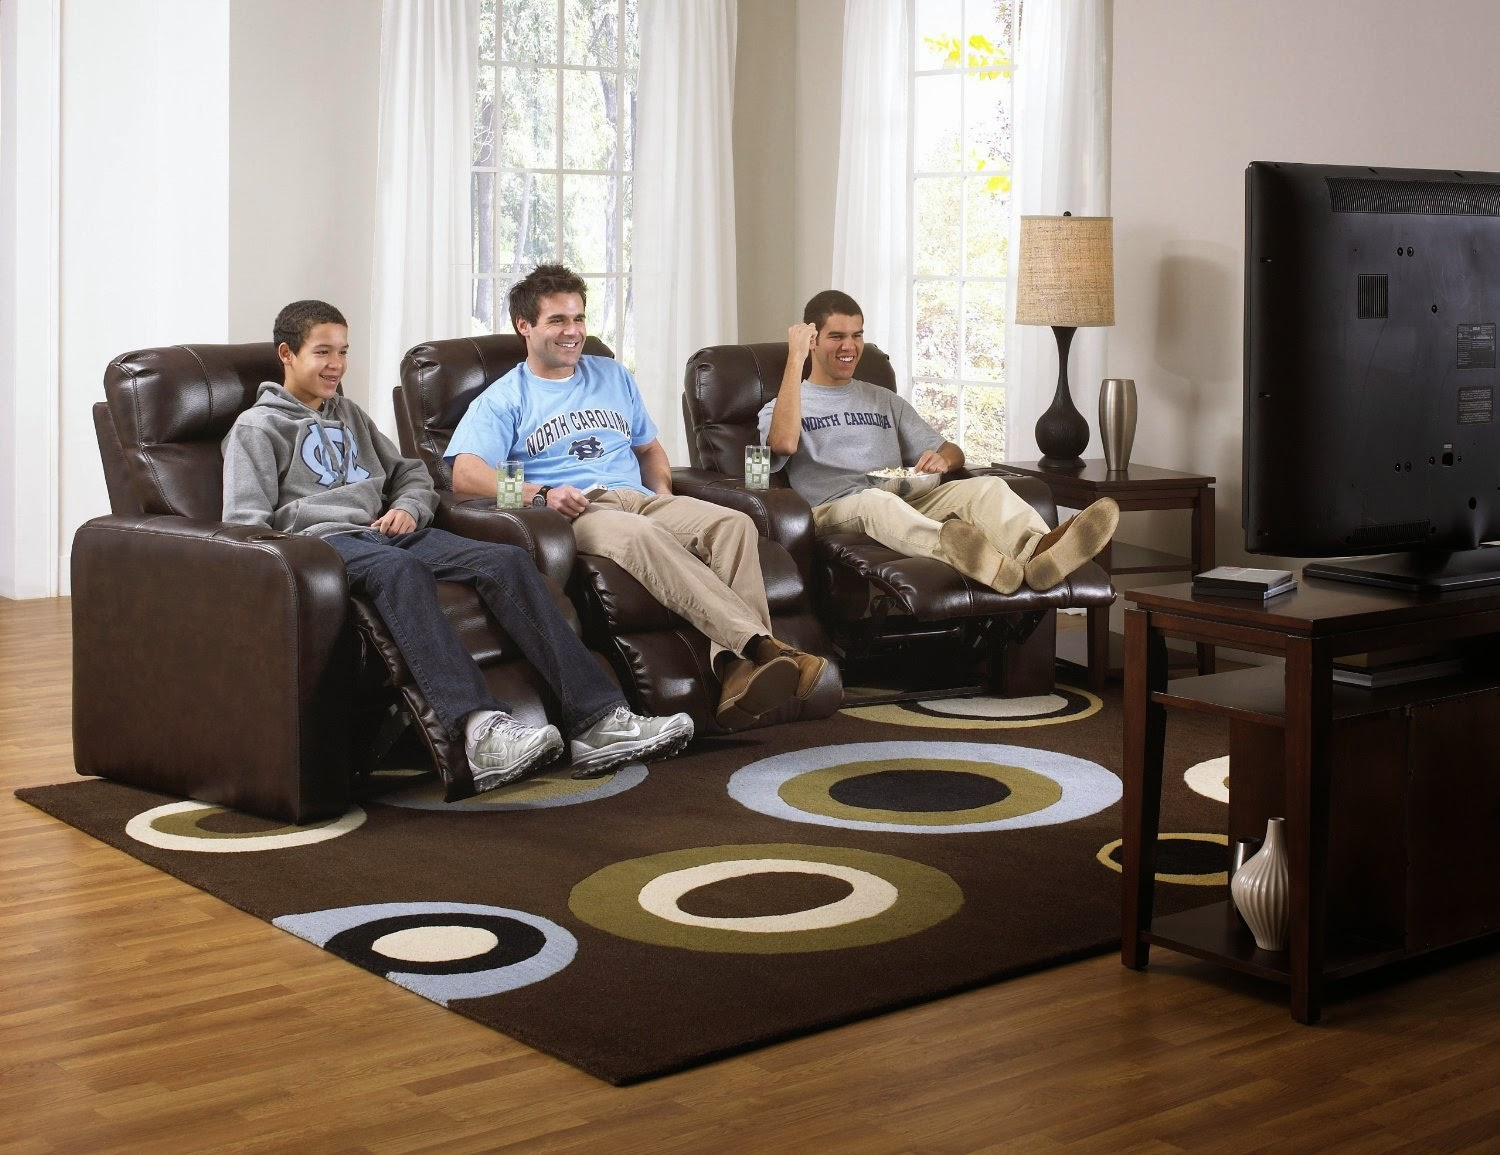 Dfs Recliner Sofa Bed Come In Bangalore Reviews: March 2015